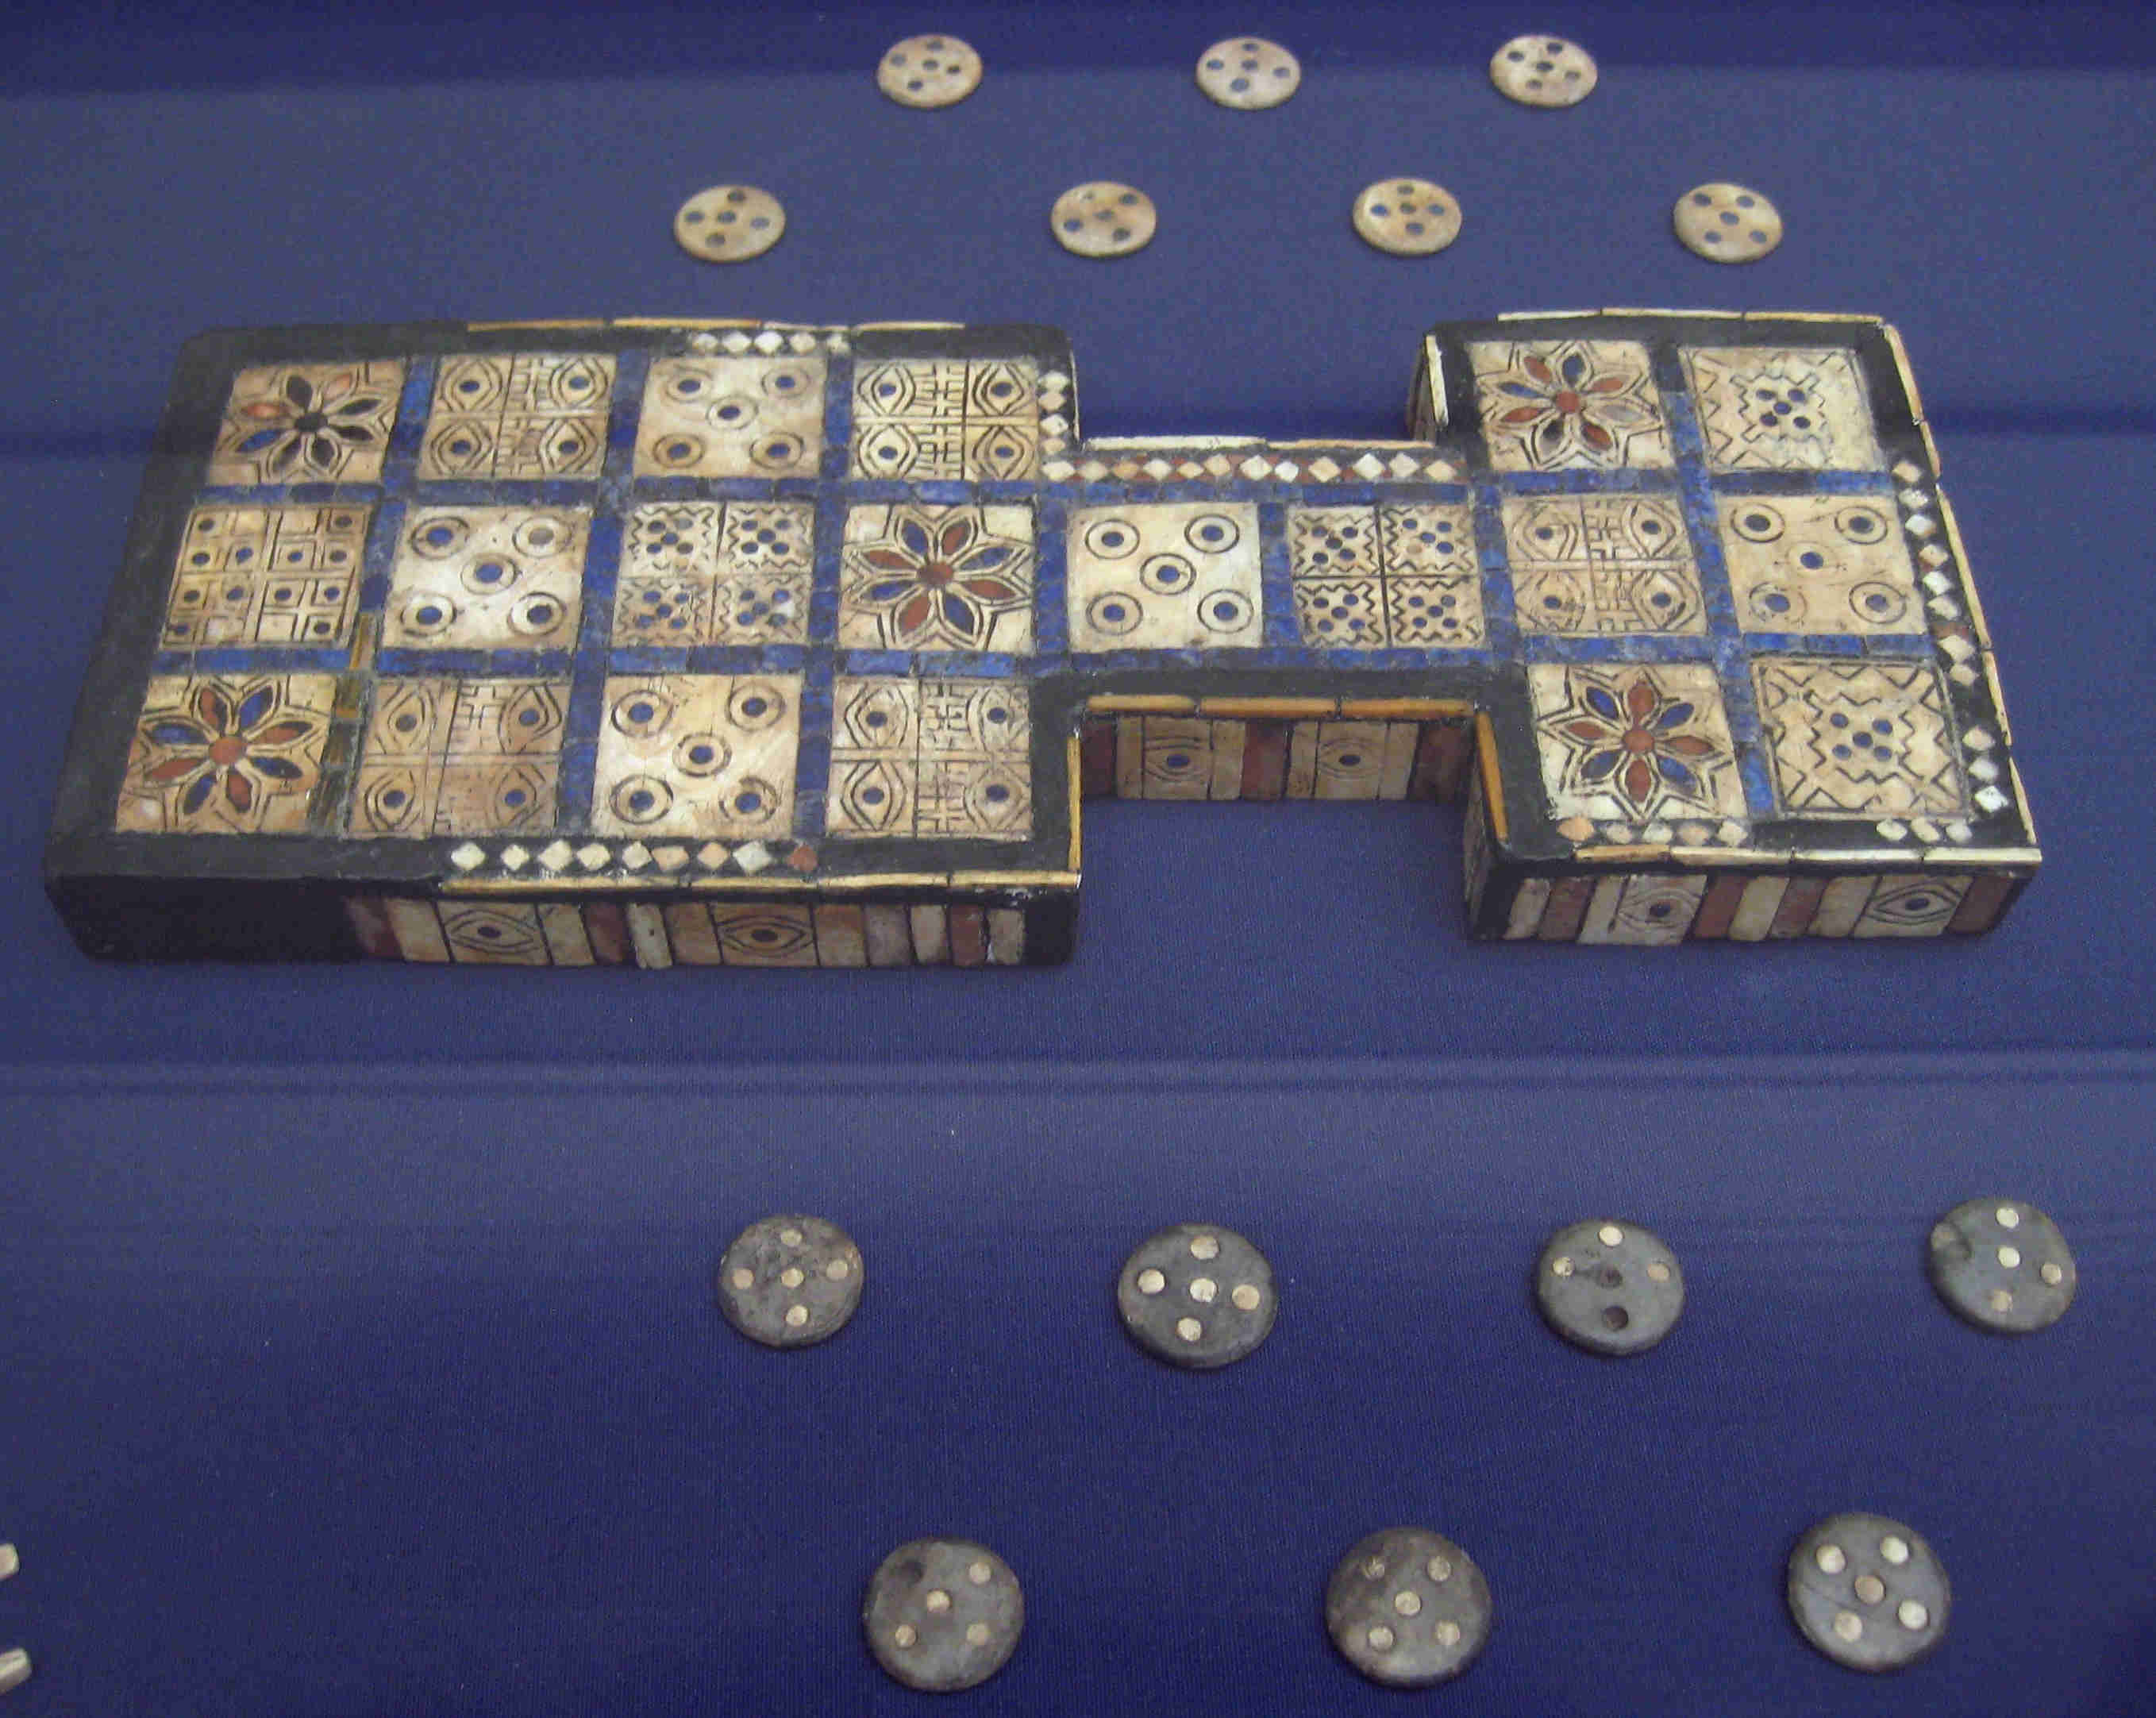 Jogo Real de Ur - The Royal Game of Ur (The British Museum)